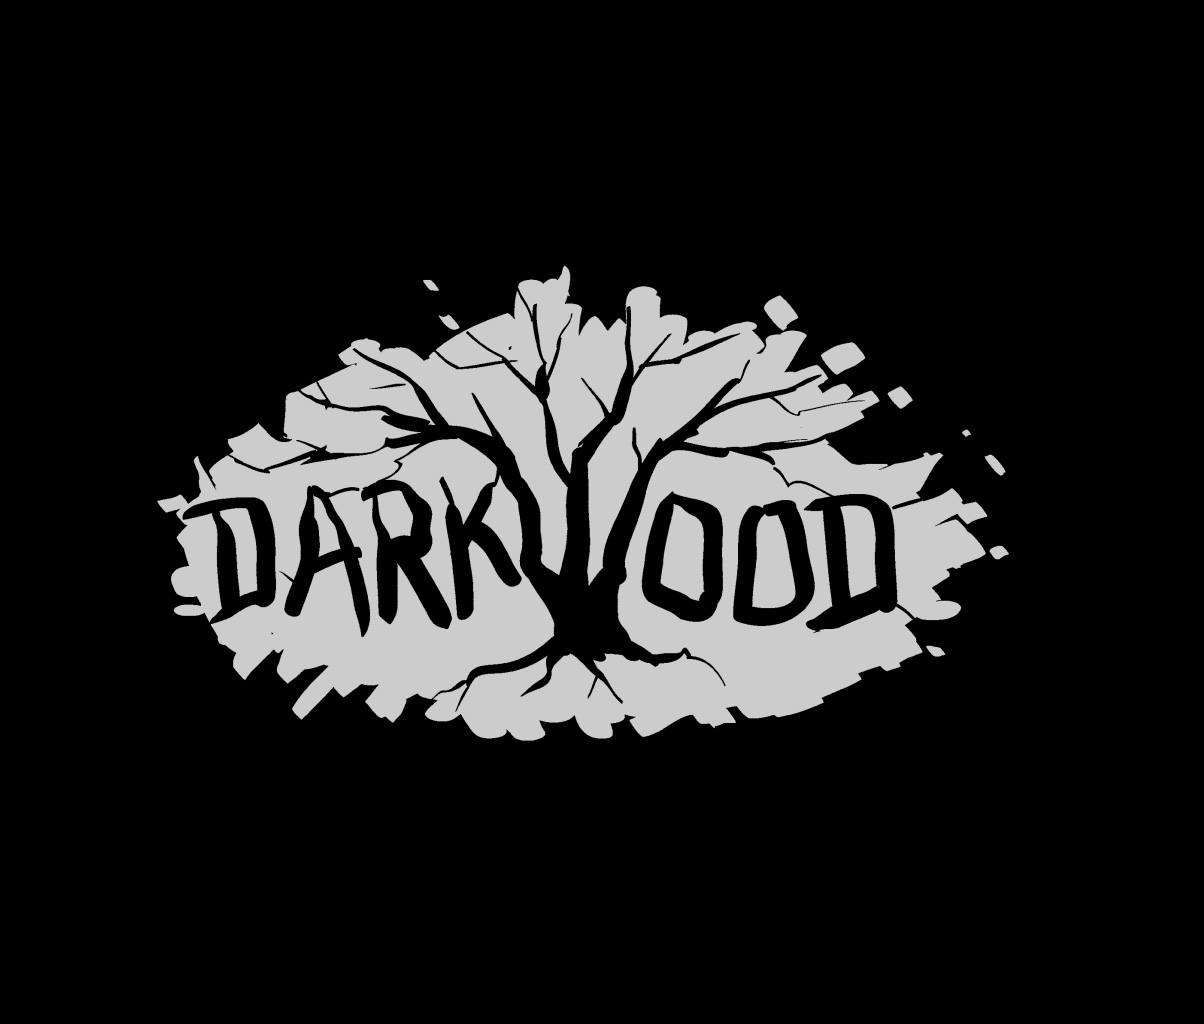 Darkwood commercial